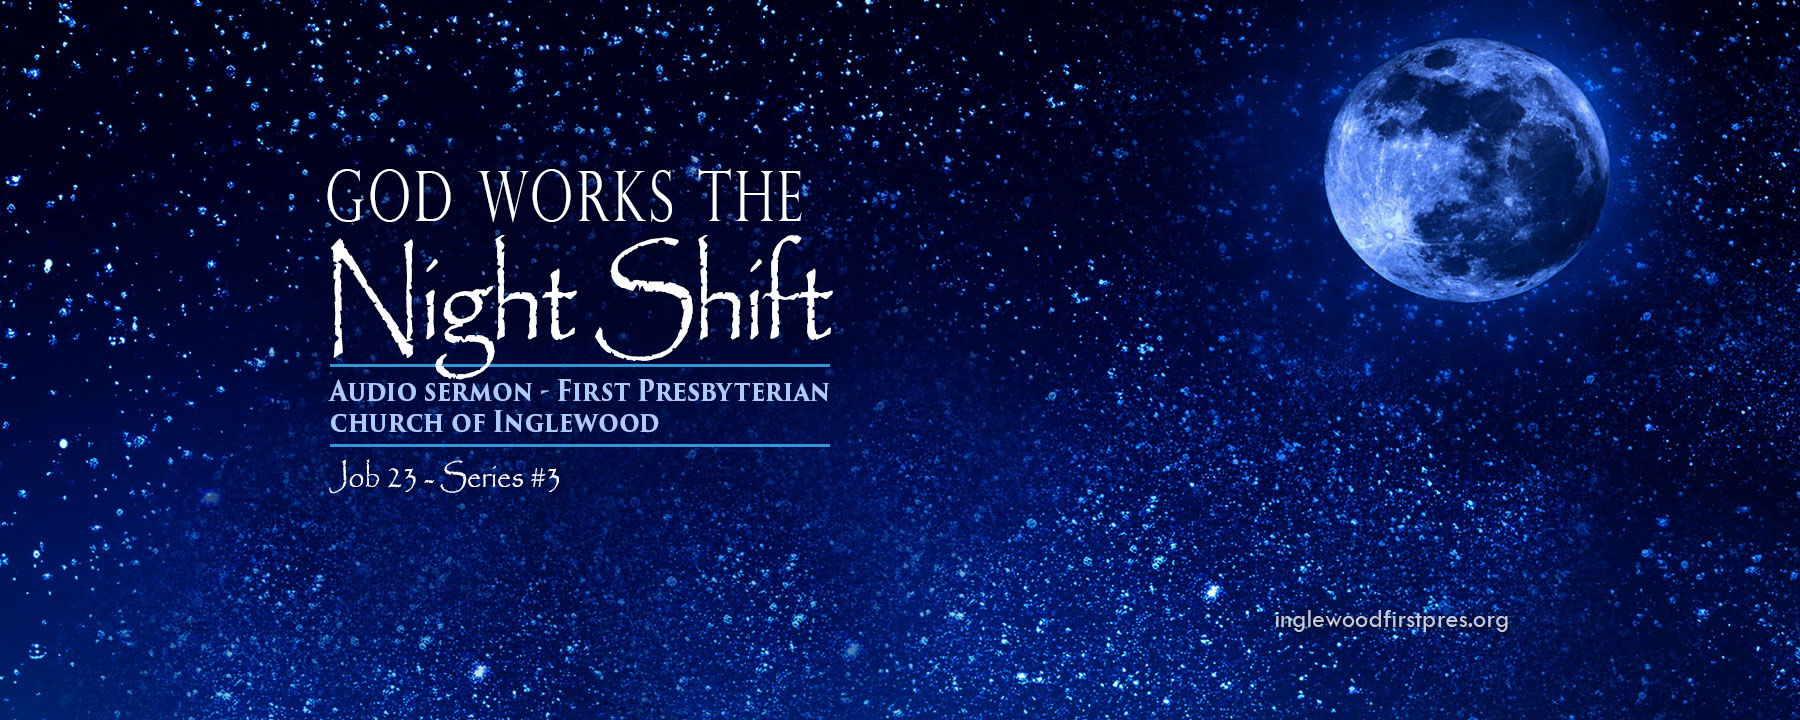 JOB SERIES #3: God Works the Night Shift by Rev. Dr. Harold E. Kidd (Job 23: 1 – 10)